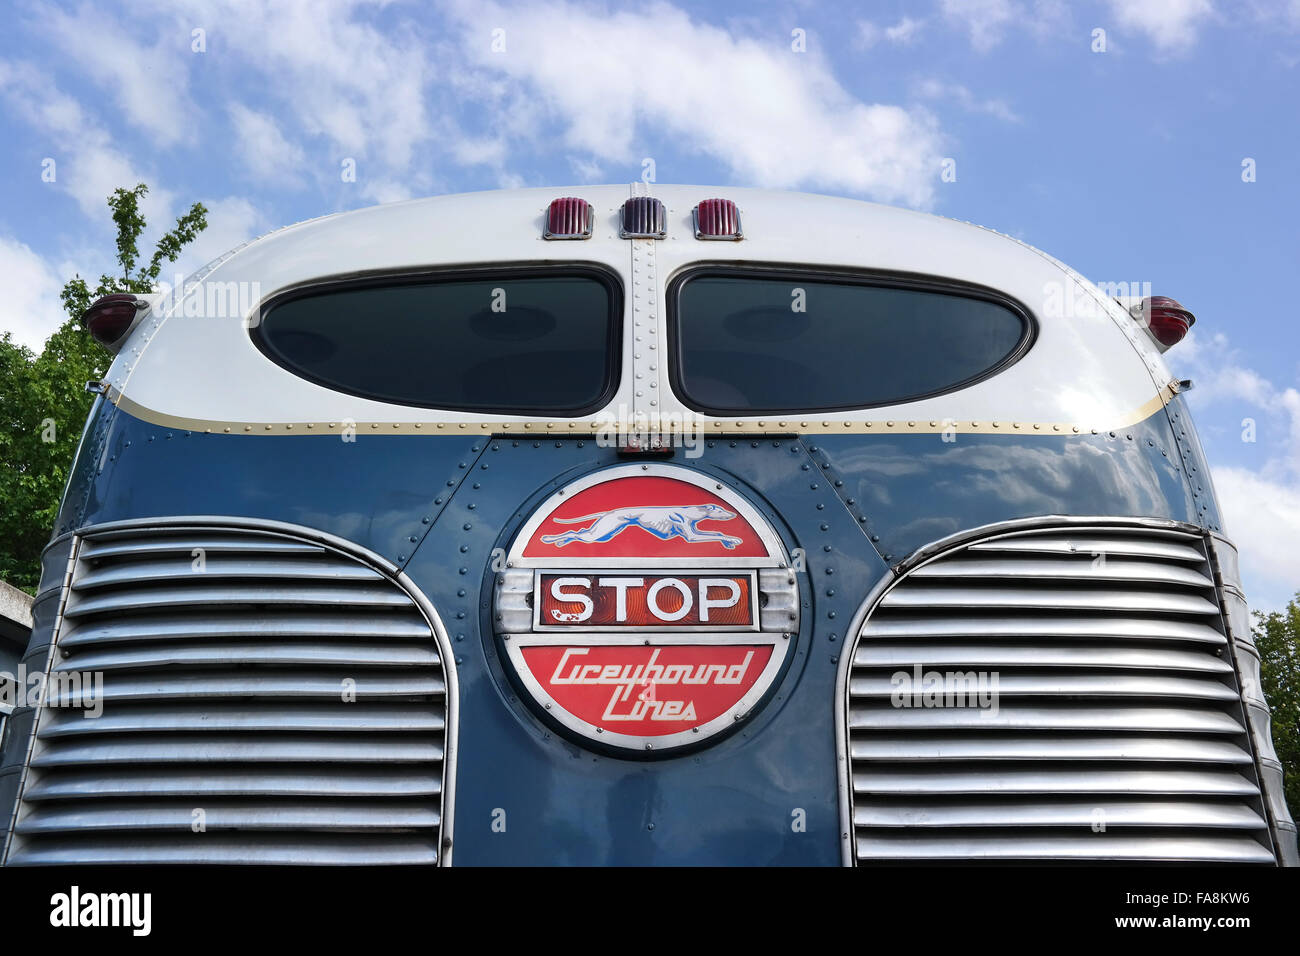 Rear side of an oldtimer Bus of Greyhound Lines. - Stock Image